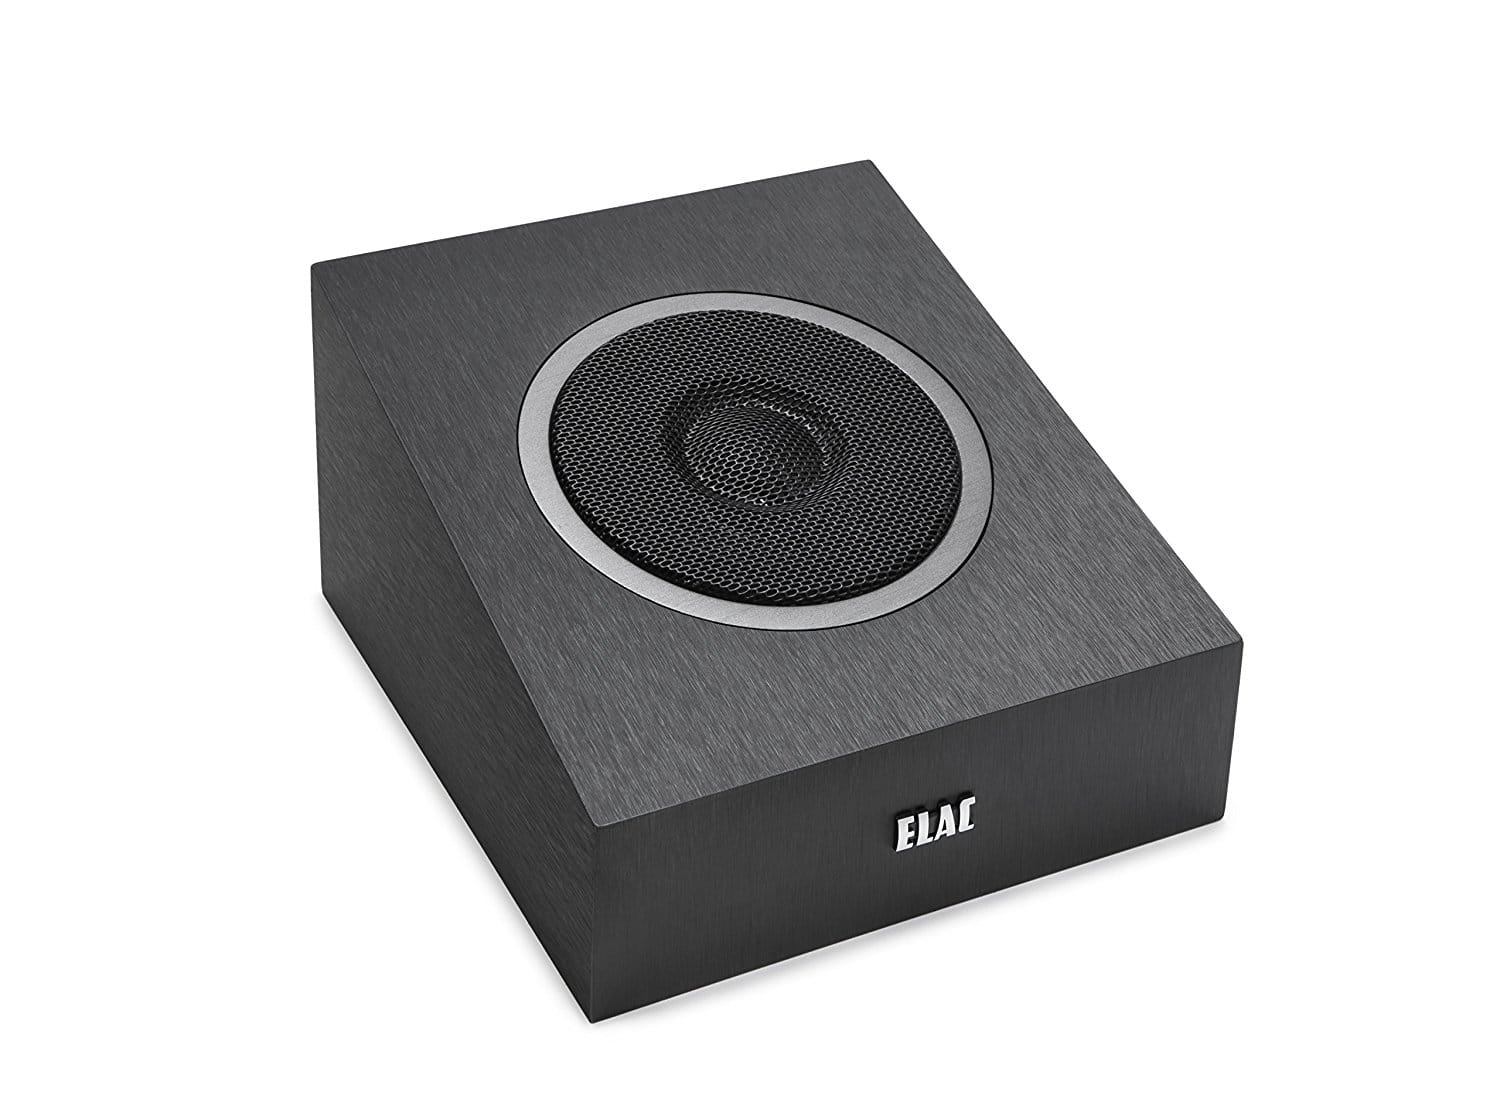 "ELAC A4 Debut Series 4"" Concentric Dolby Atmos Speakers by Andrew Jones (Pair) $149.99"